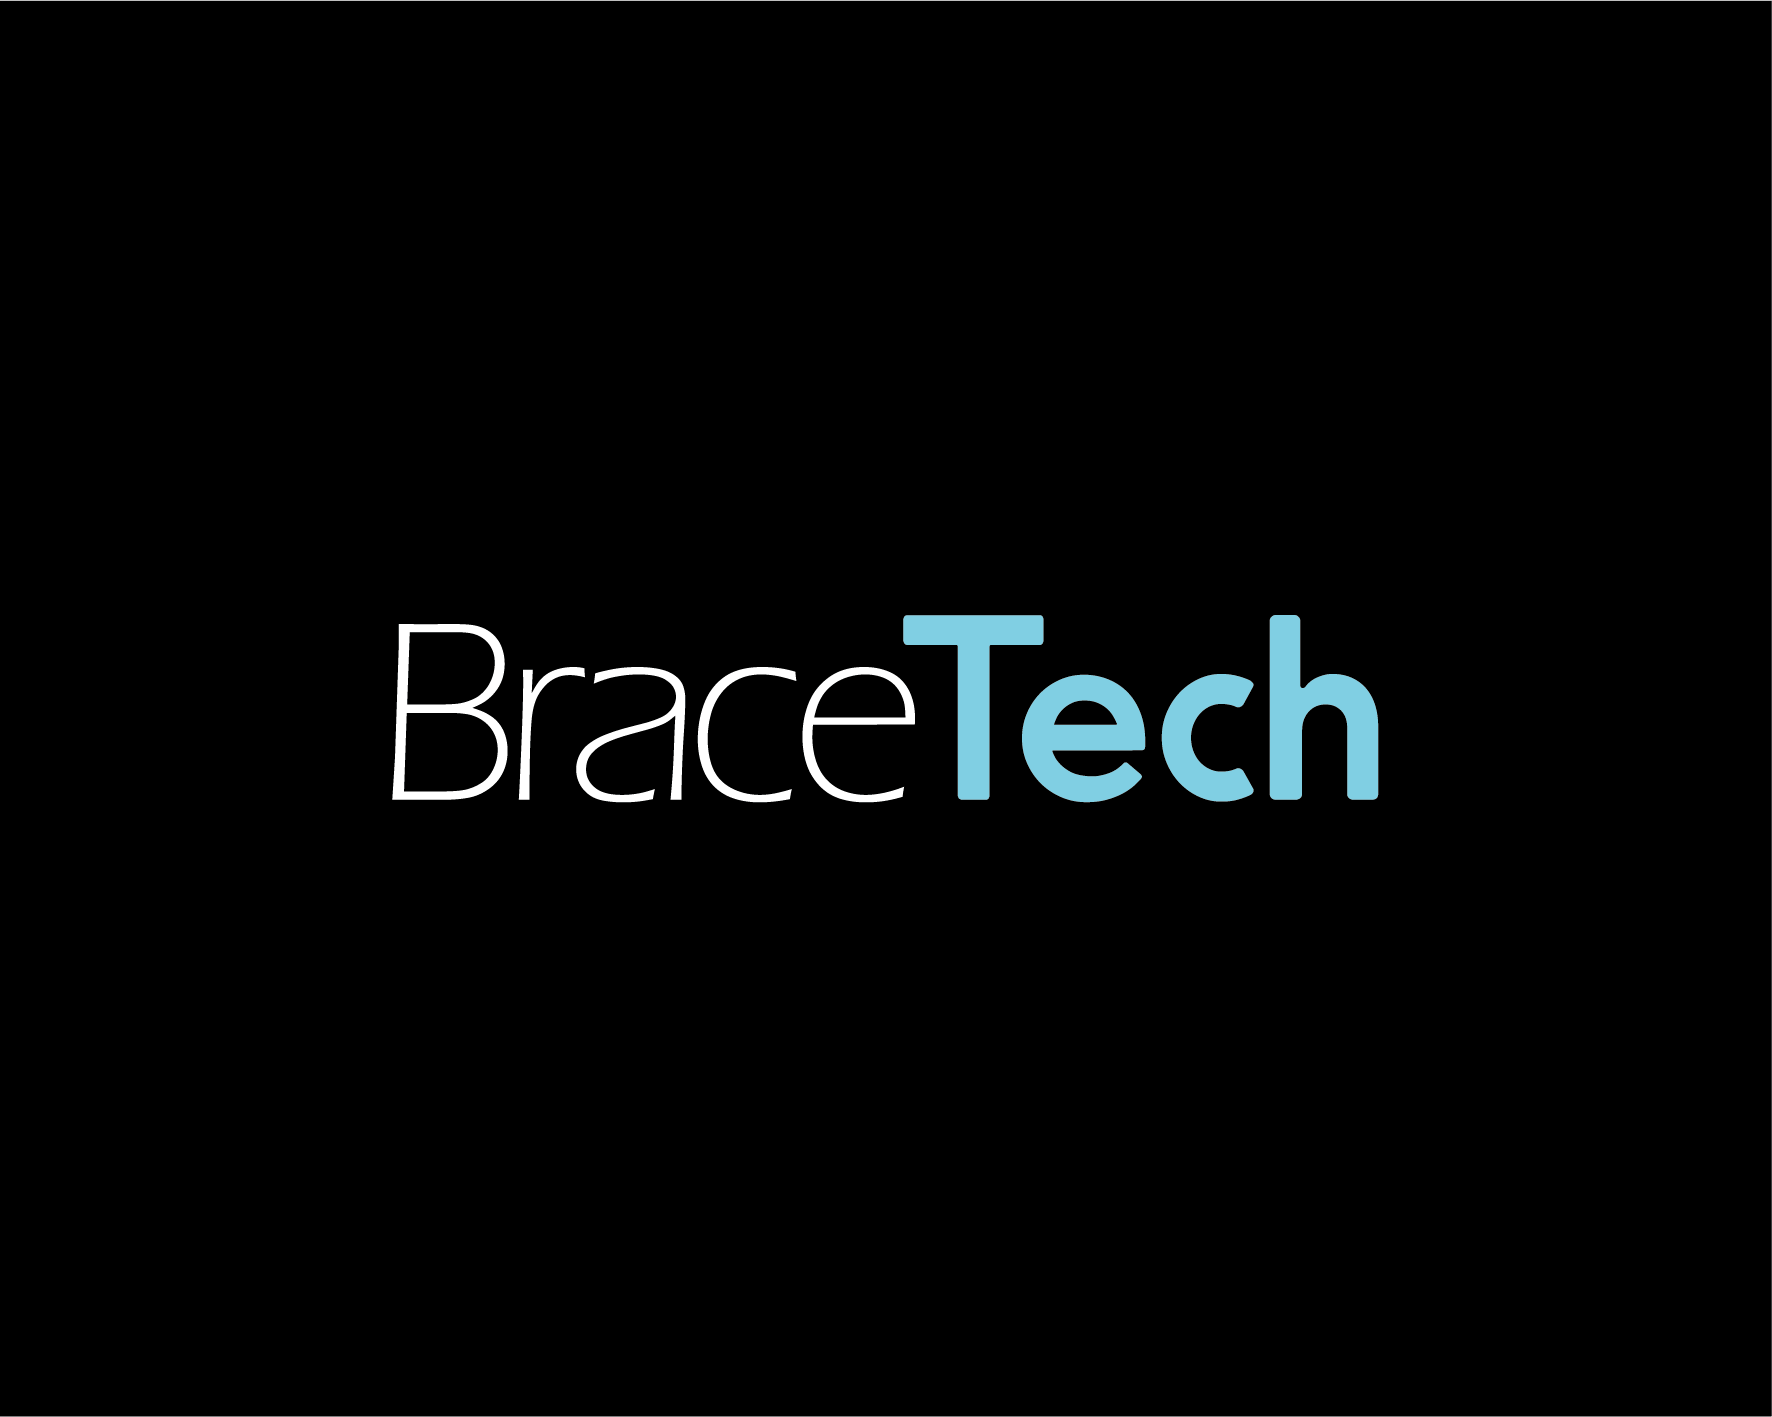 BraceTech professional IT computing Services logo